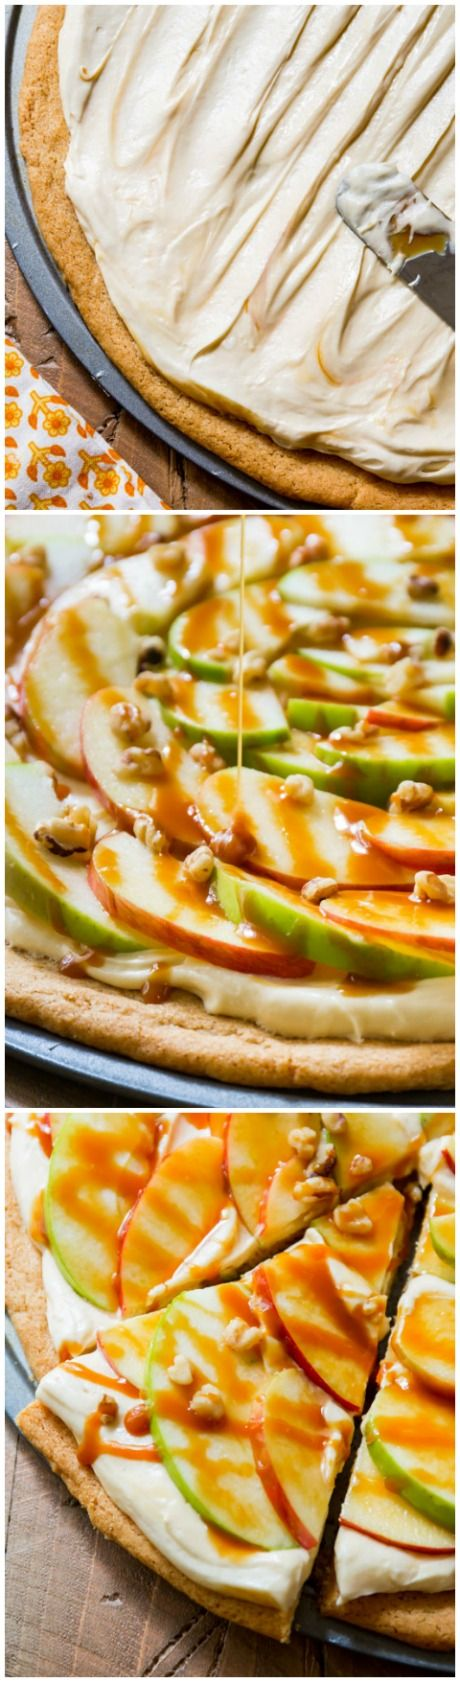 You haven't had pizza until you've had apple dessert pizza with caramel cream cheese frosting!